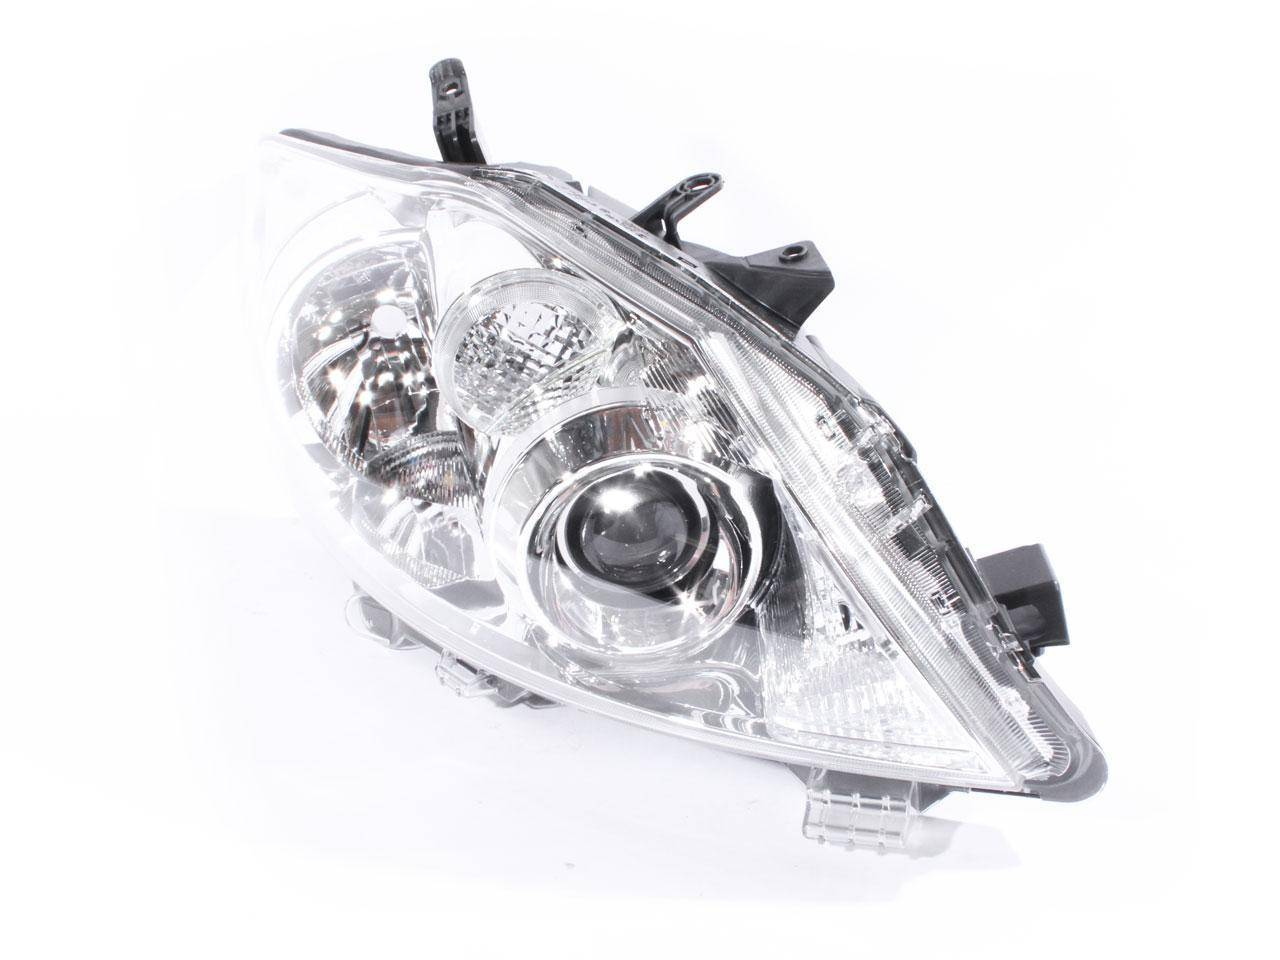 Toyota Corolla Zre152 Zre153 09 10 11 12 Hatch Genuine Rhs Right Headlight Lamp